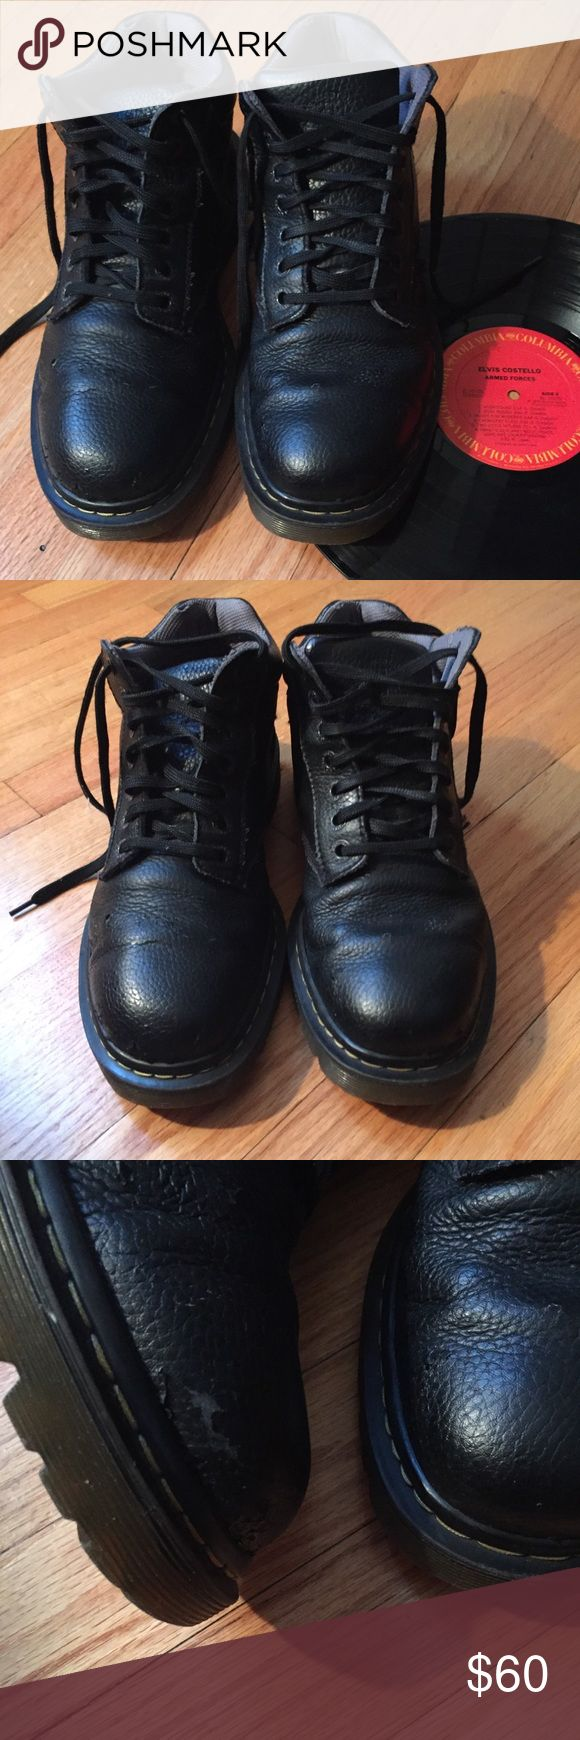 Dr. Marten's Men's Boots Size 11 Black Leather Dr. Marten's Men's Boots Size 11 Black Leather  GUC -minor wear at the toe -still have a lot of life left! Dr. Martens Shoes Boots